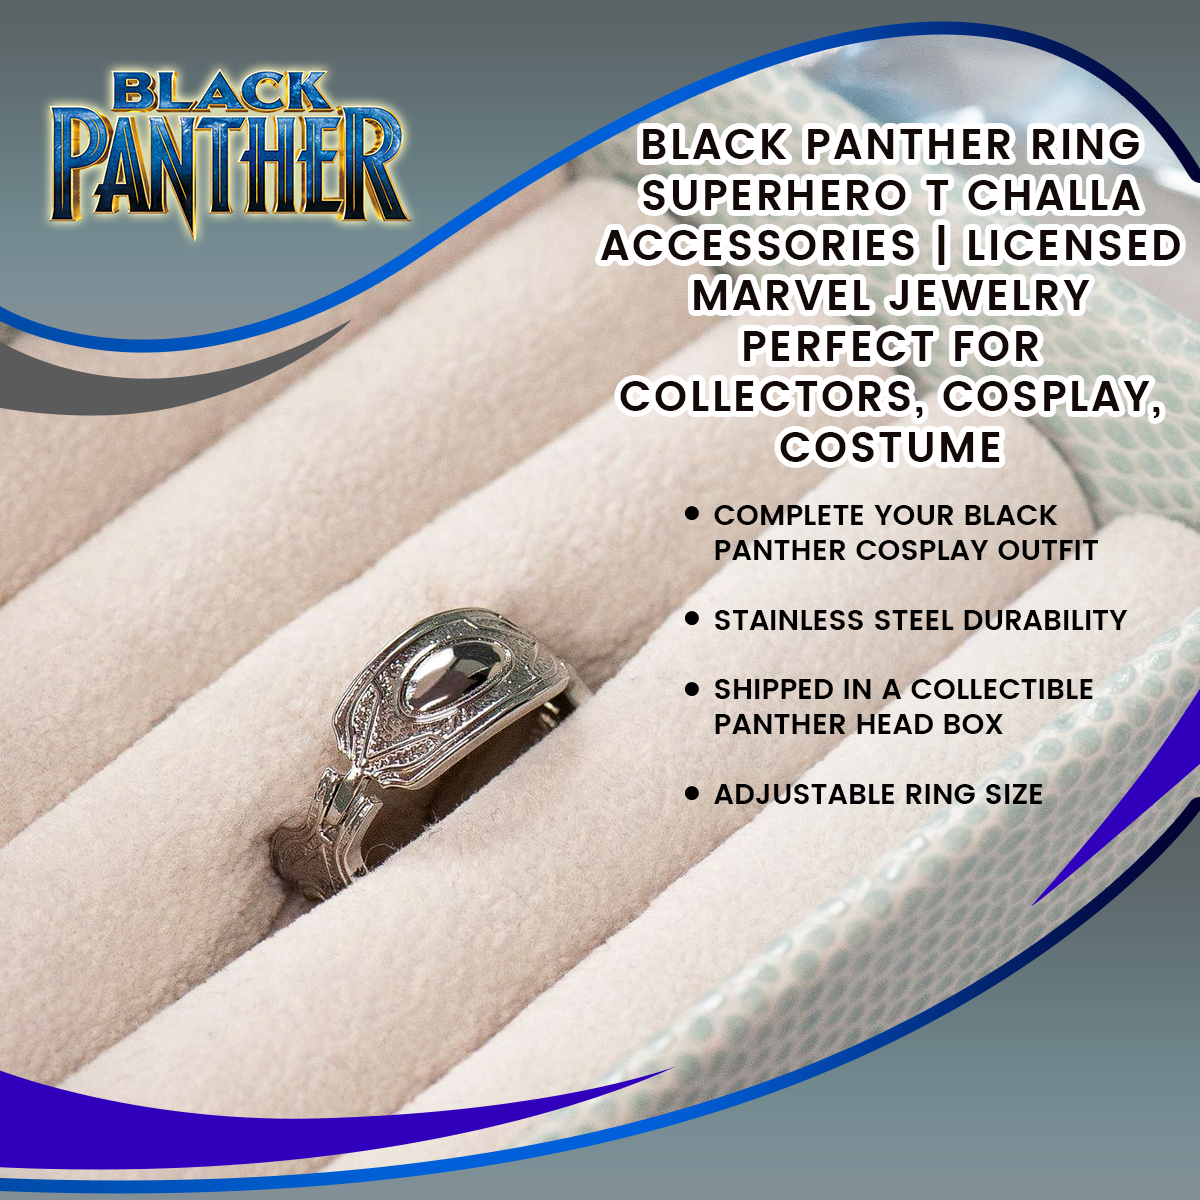 Black Panther Ring | Superhero T Challa Accessories | Licensed Marvel Jewelry | Perfect for Collectors, Cosplay, Costume